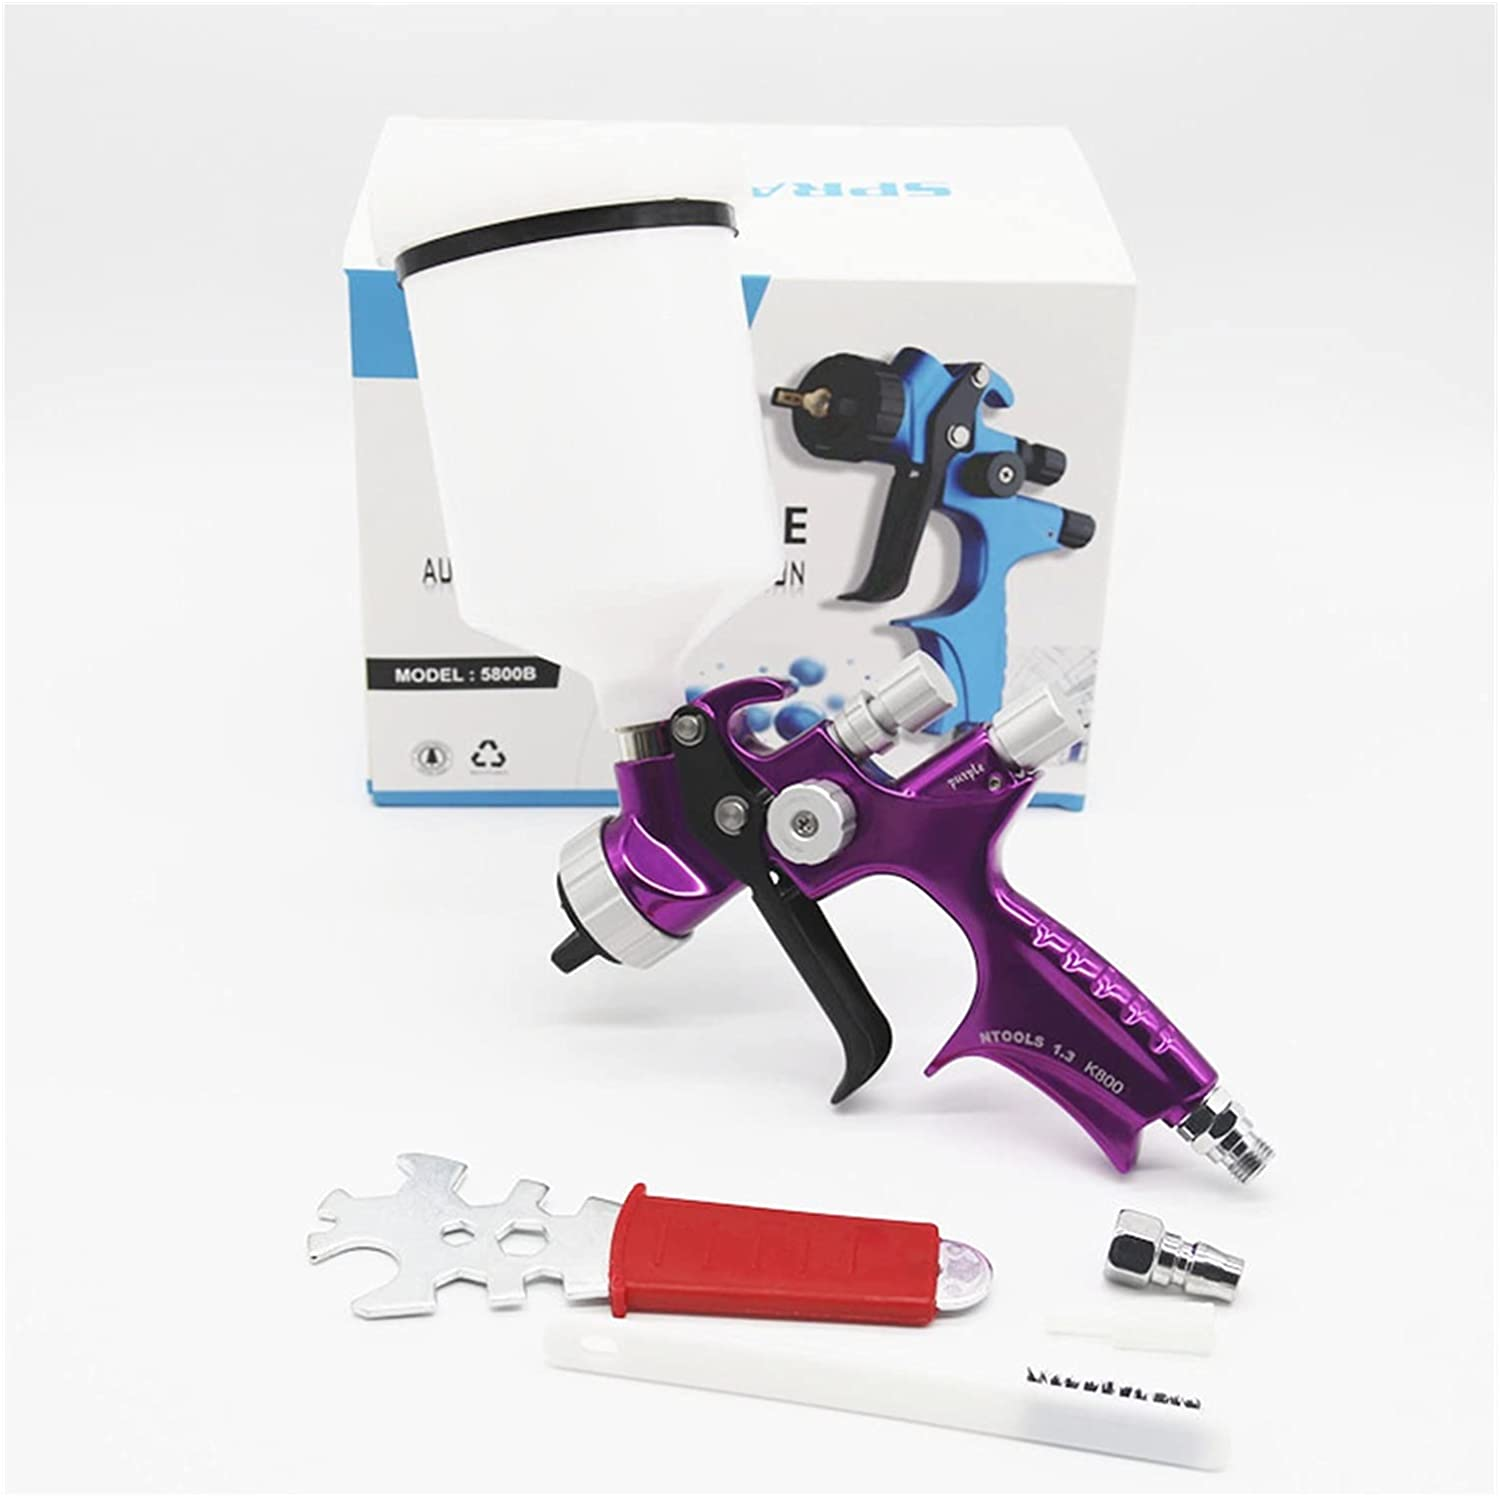 YANnew Painting Gun 1.3MM Nozzle Based El Paso Mall Spray Water Air Paint Max 85% OFF